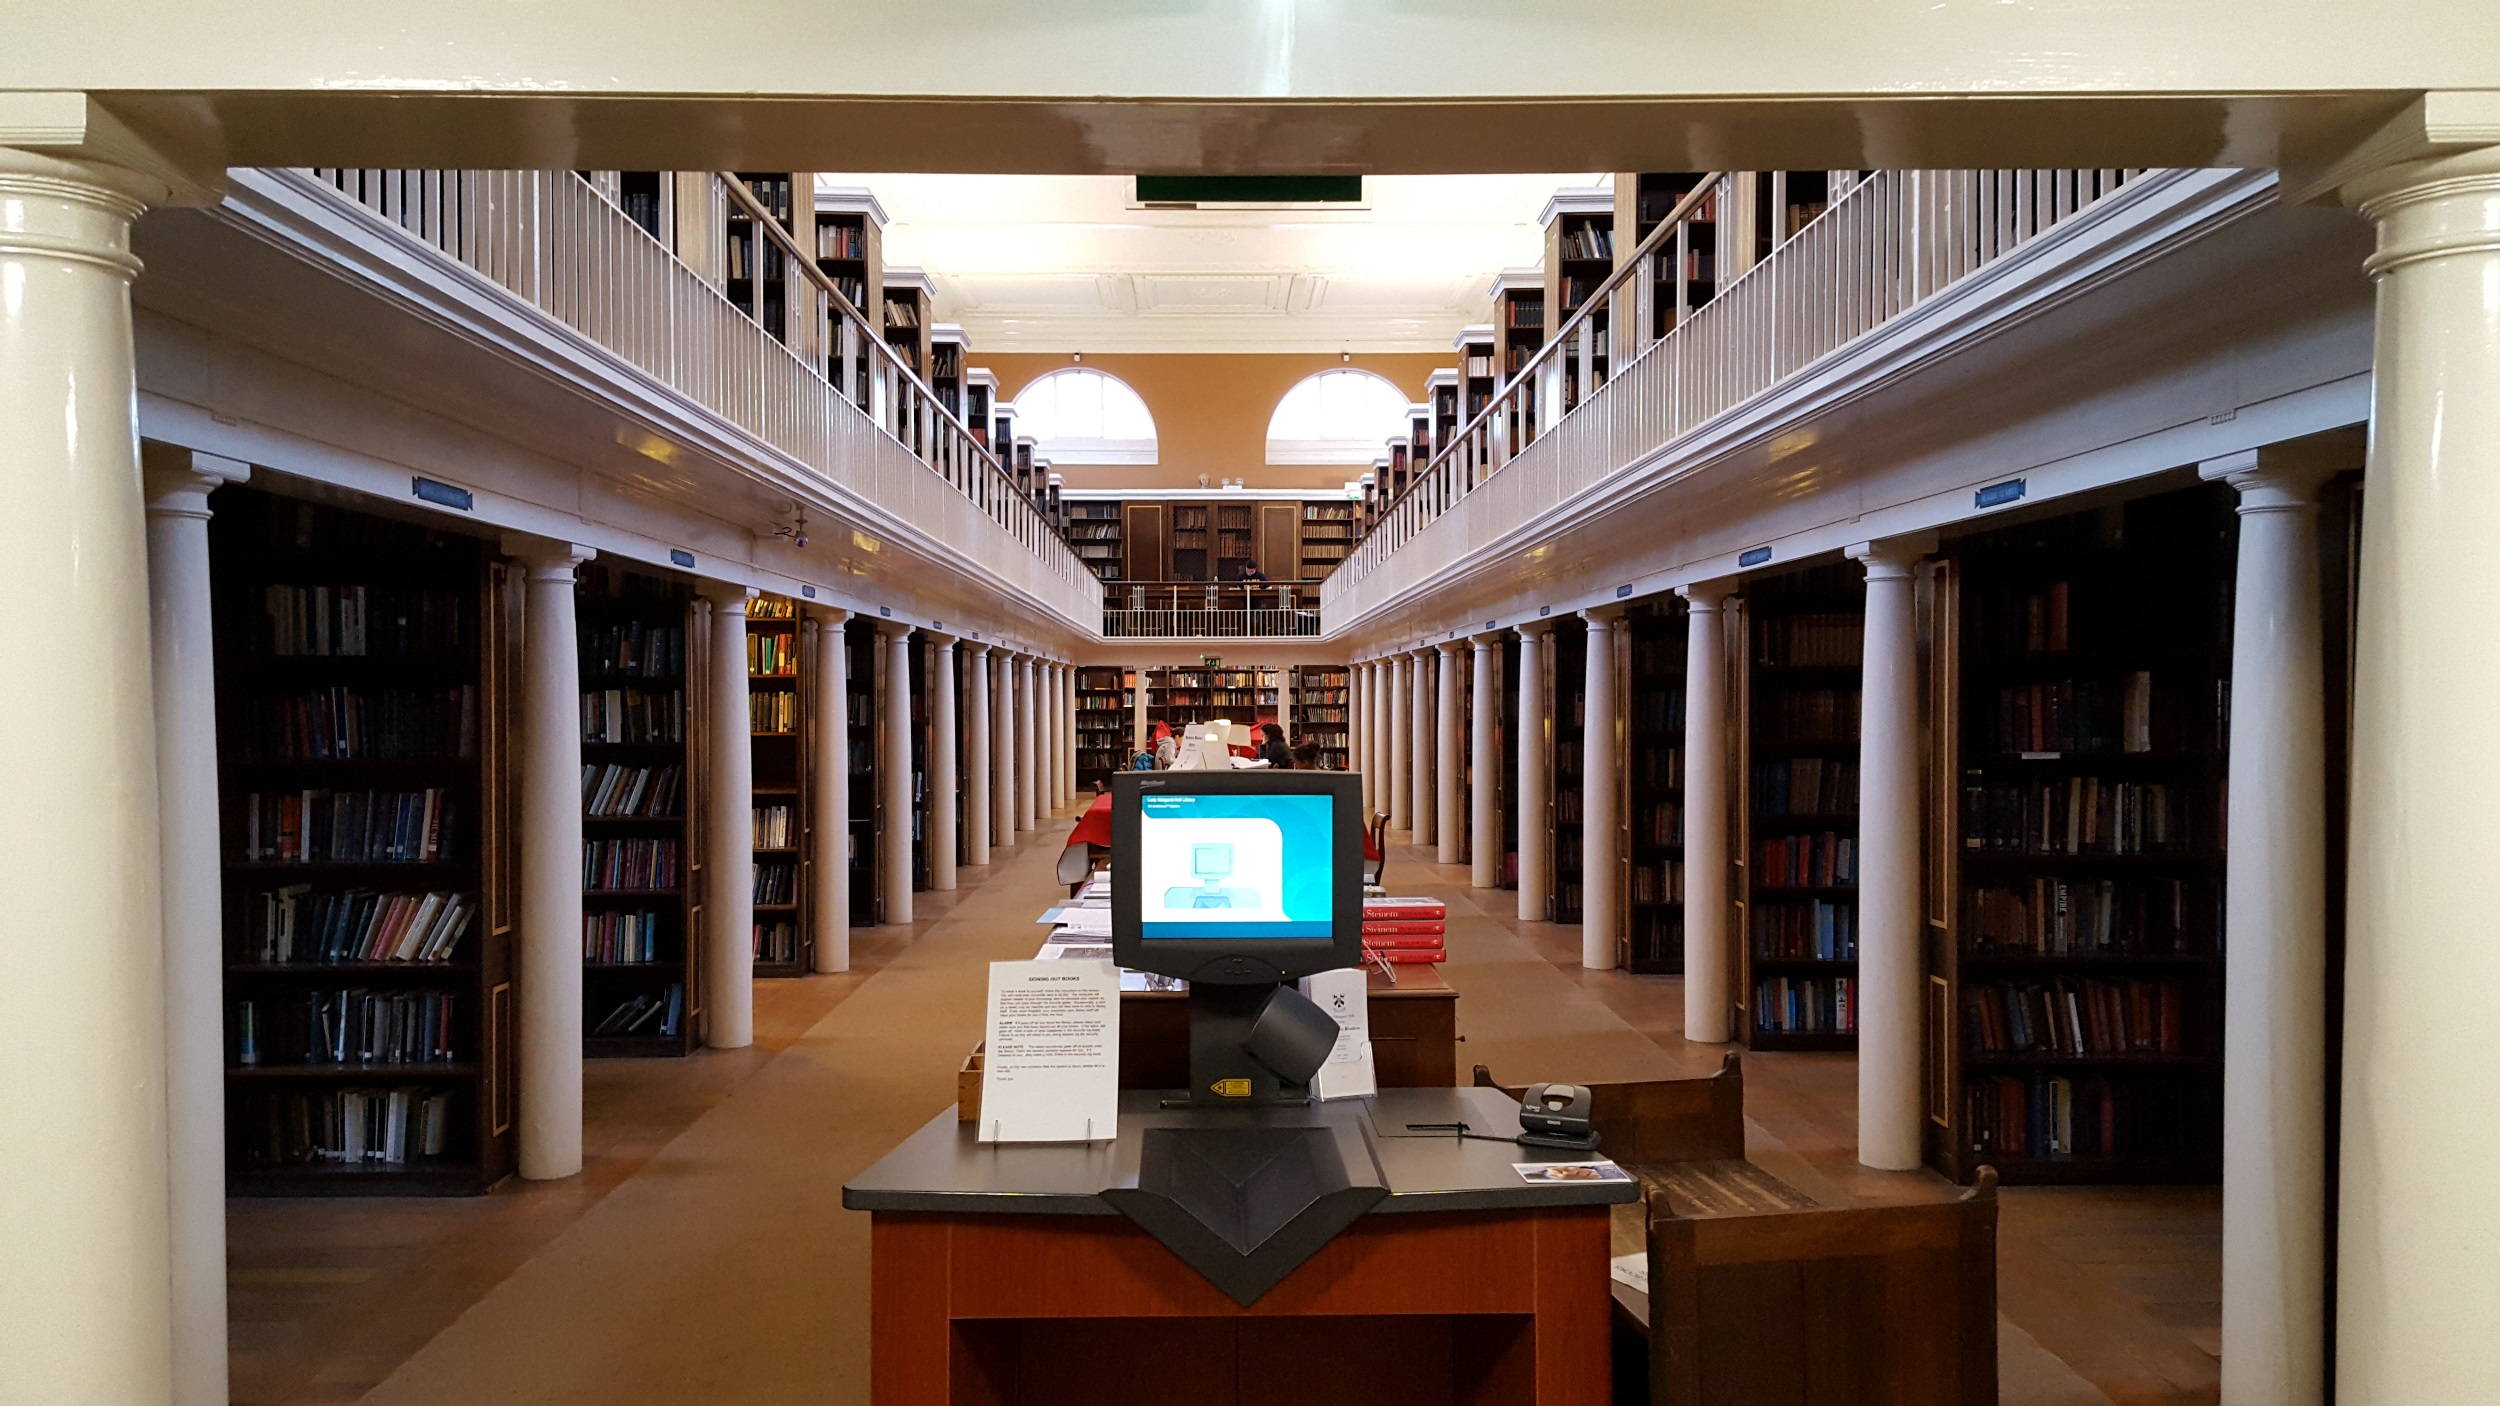 The interior of the library